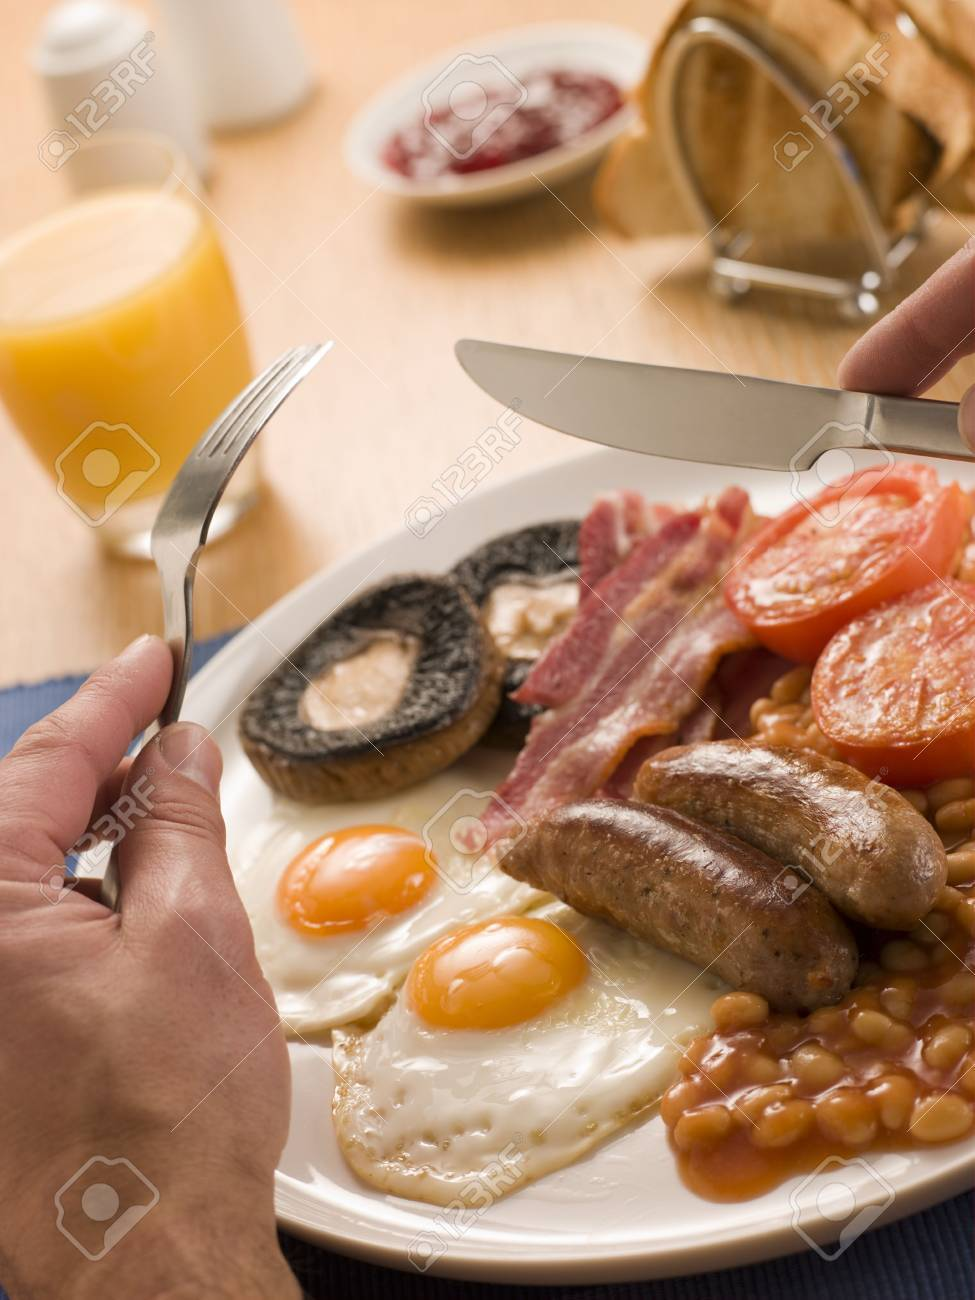 Eating a Full English Breakfast Stock Photo - 3476692